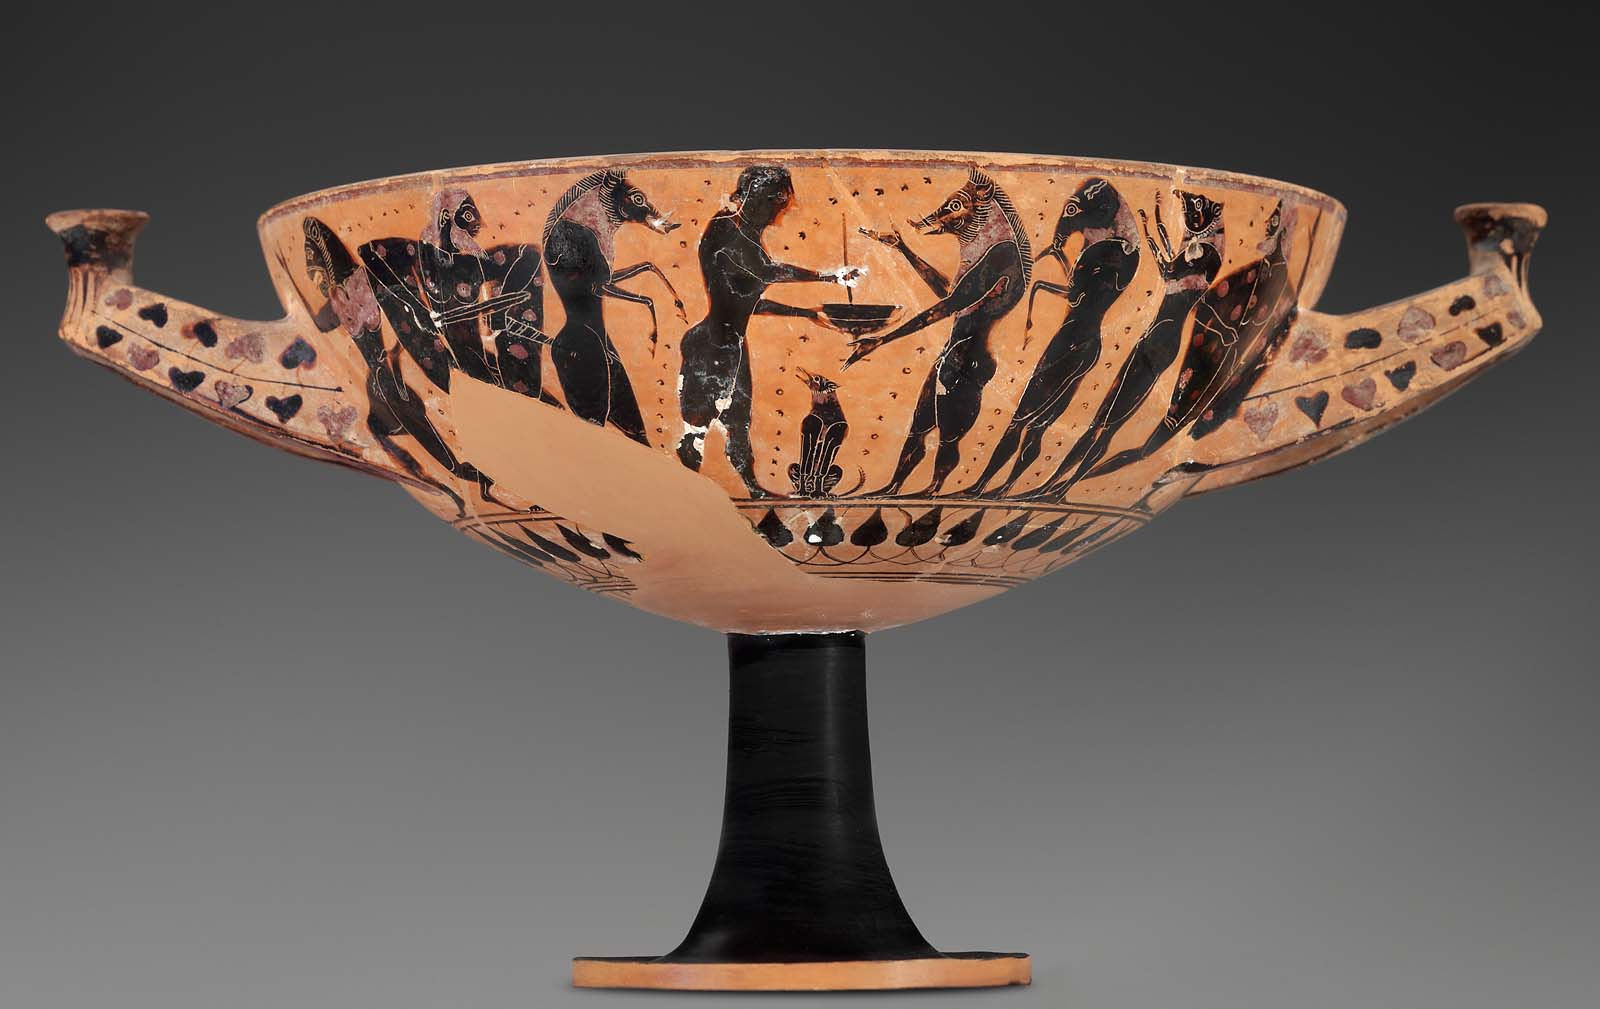 Drinking cup depicting scenes from the Odyssey